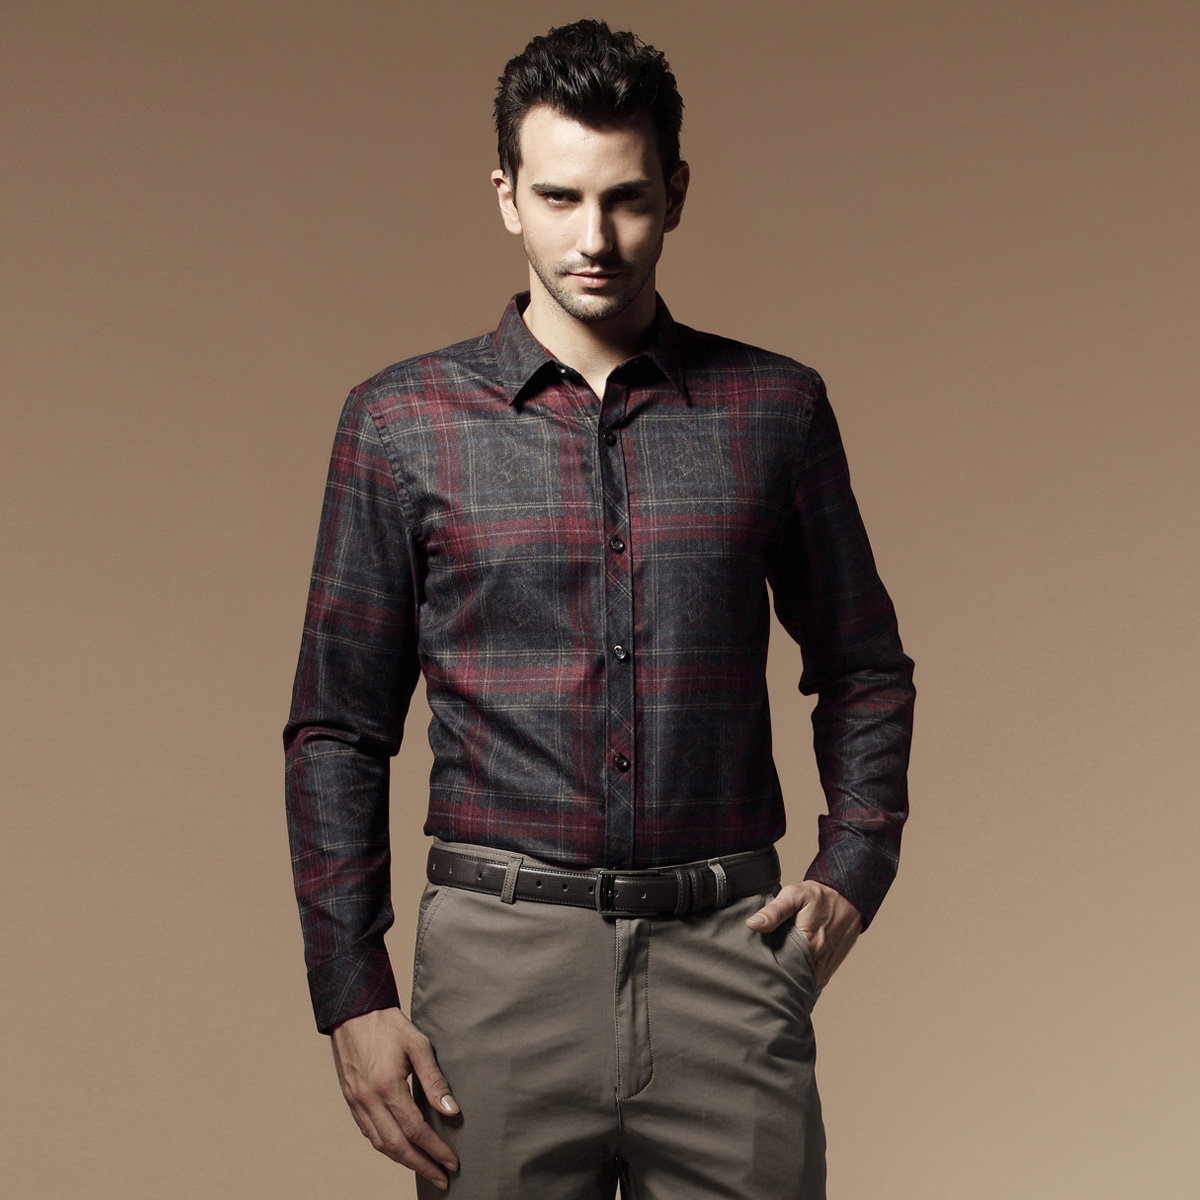 Male shirt long-sleeve business casual men's clothing - Online Store 737589 store